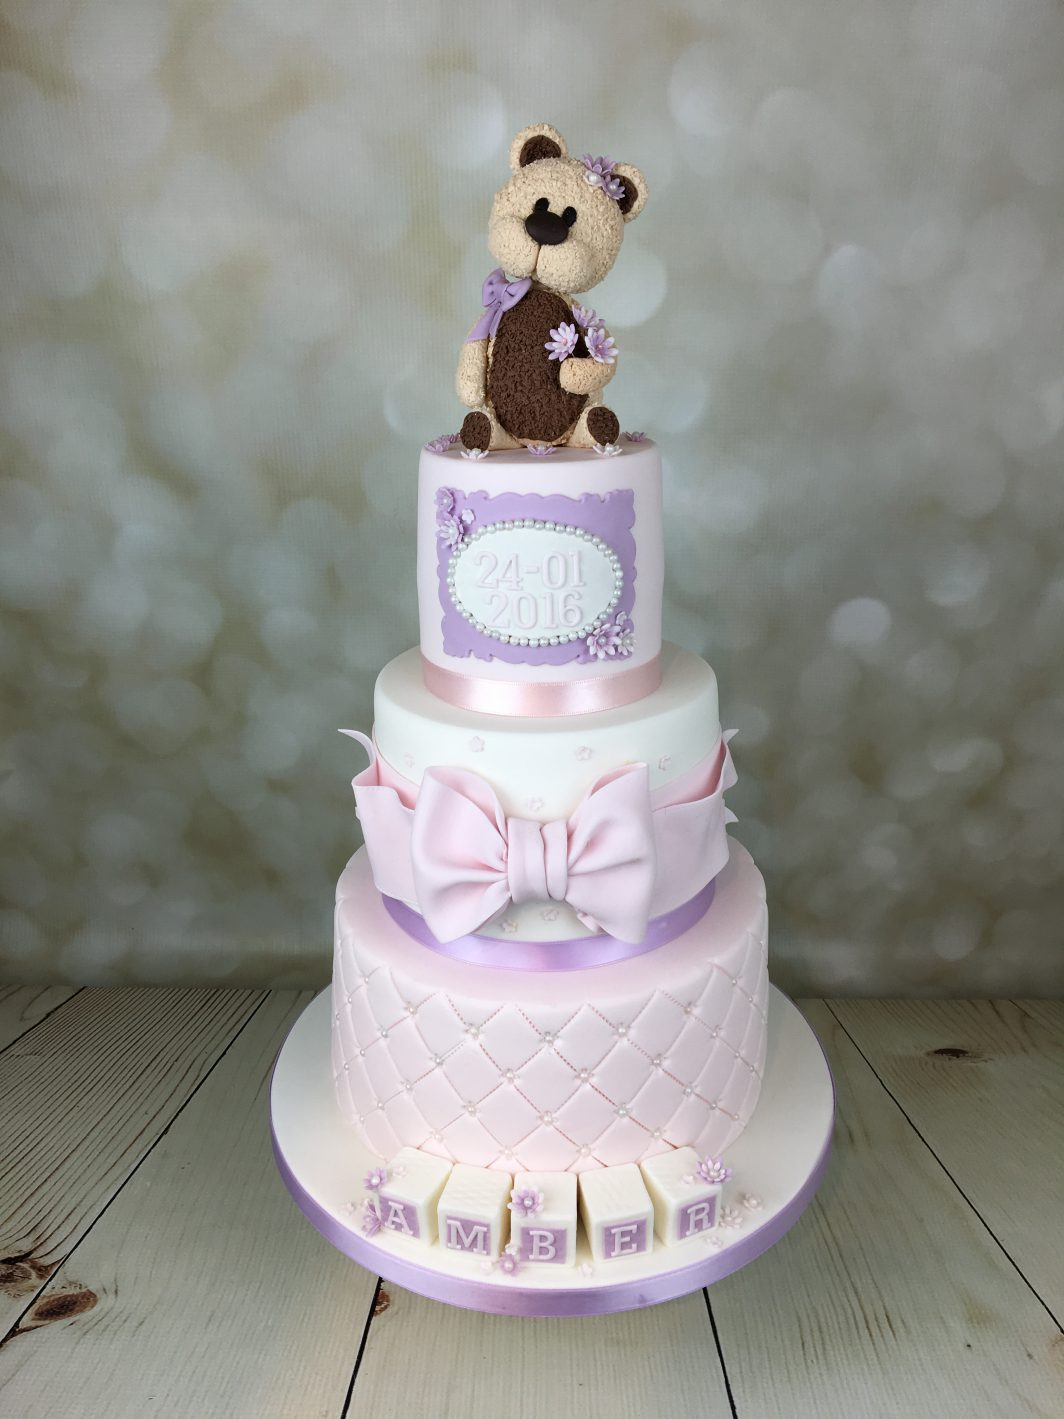 Christening Cake Lilac And Pink With Teddy Bear Topper